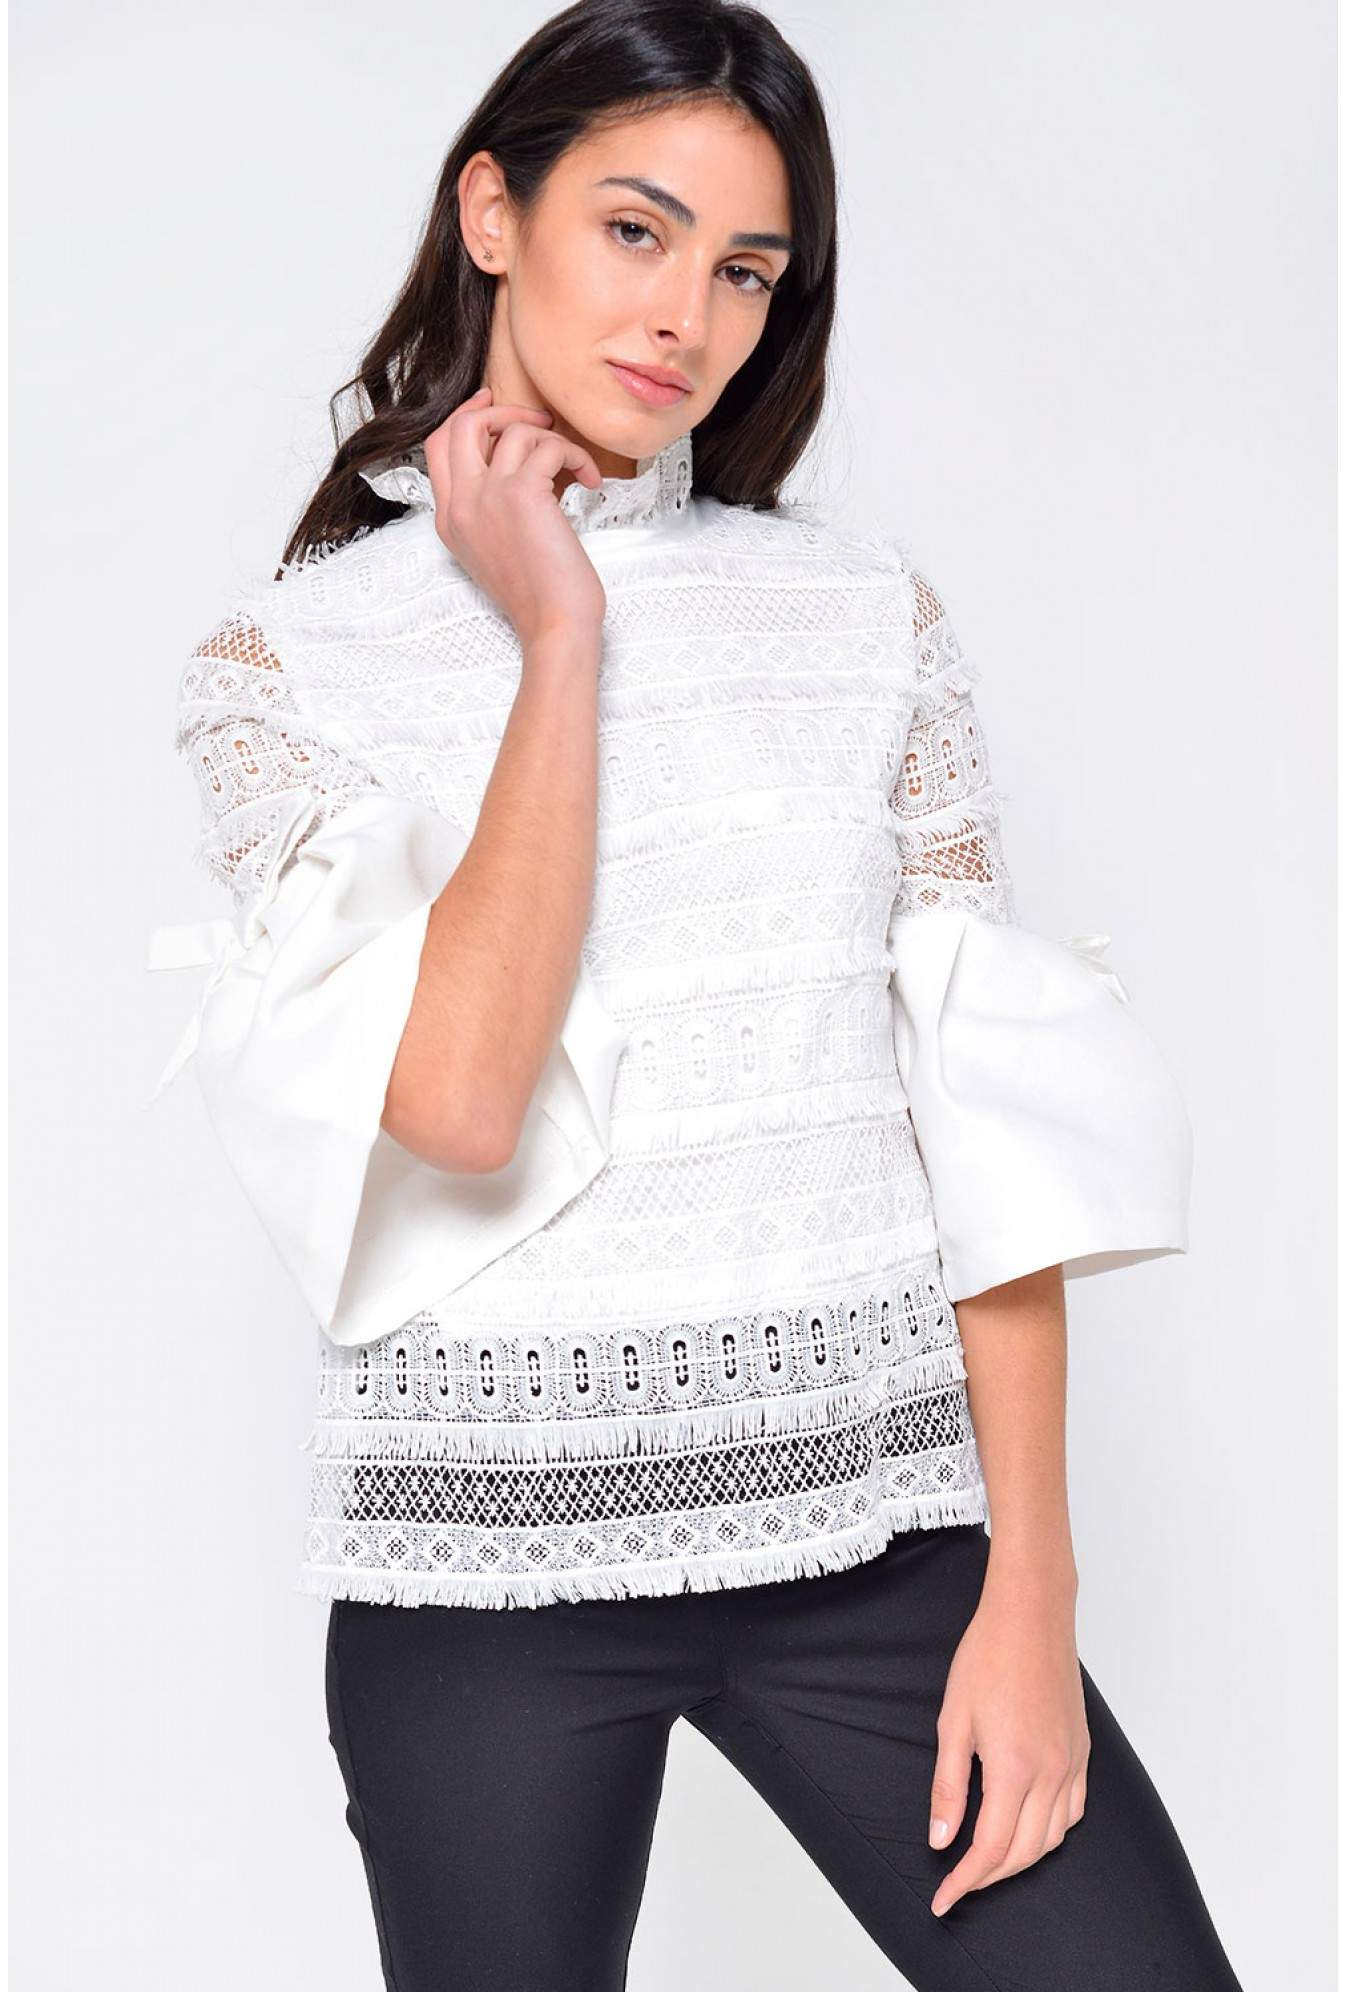 69d8036f8e05c Marc Angelo Rella Flare Sleeve Crochet Top in Off White